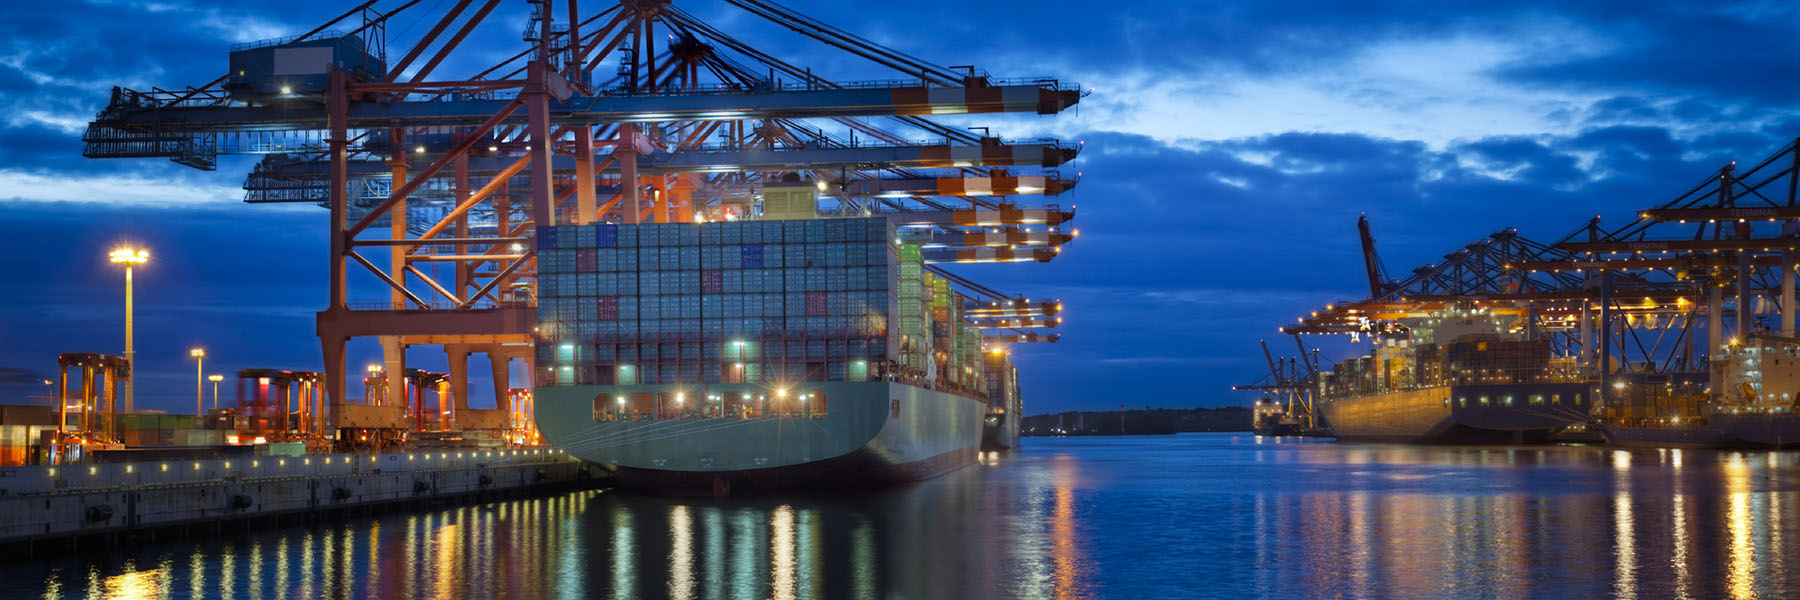 how to create and exportation business